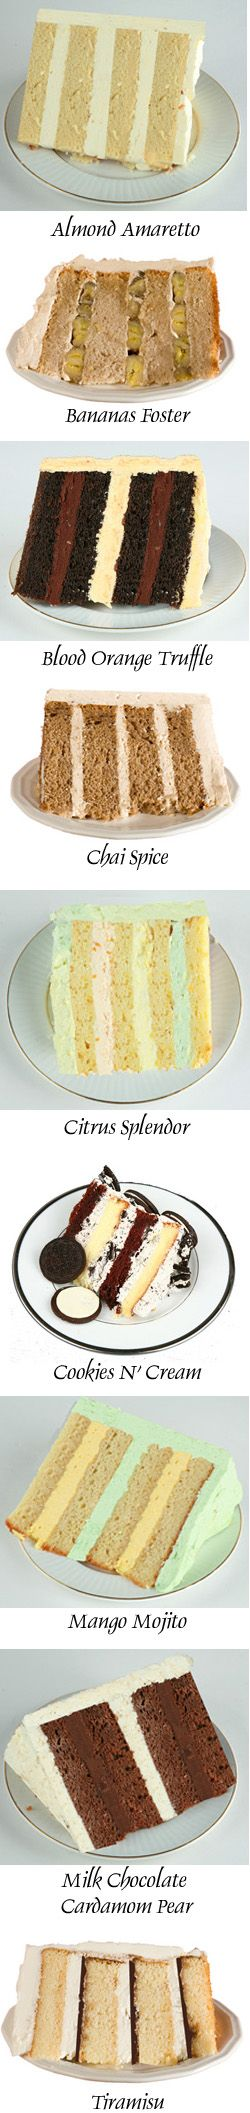 Good ideas for cake flavors